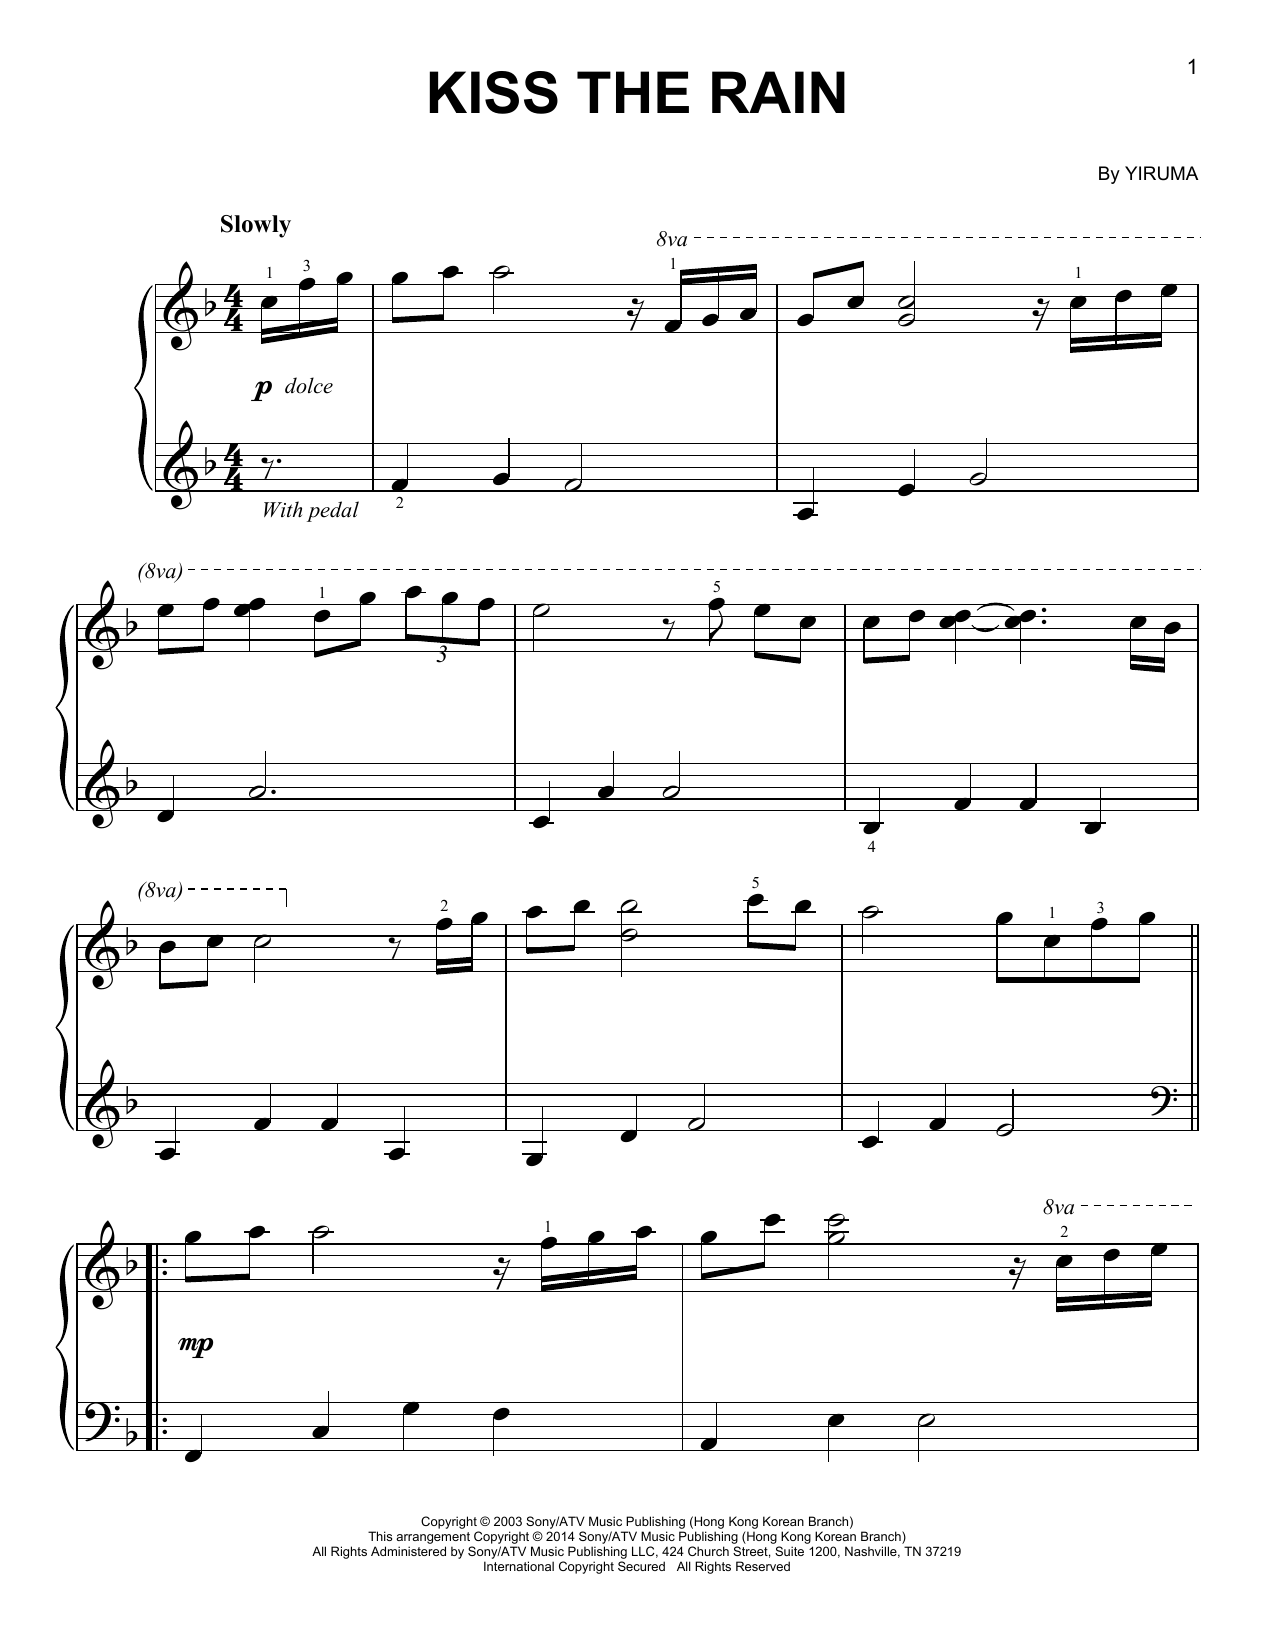 Kiss The Rain piano sheet music by Yiruma - Easy Piano